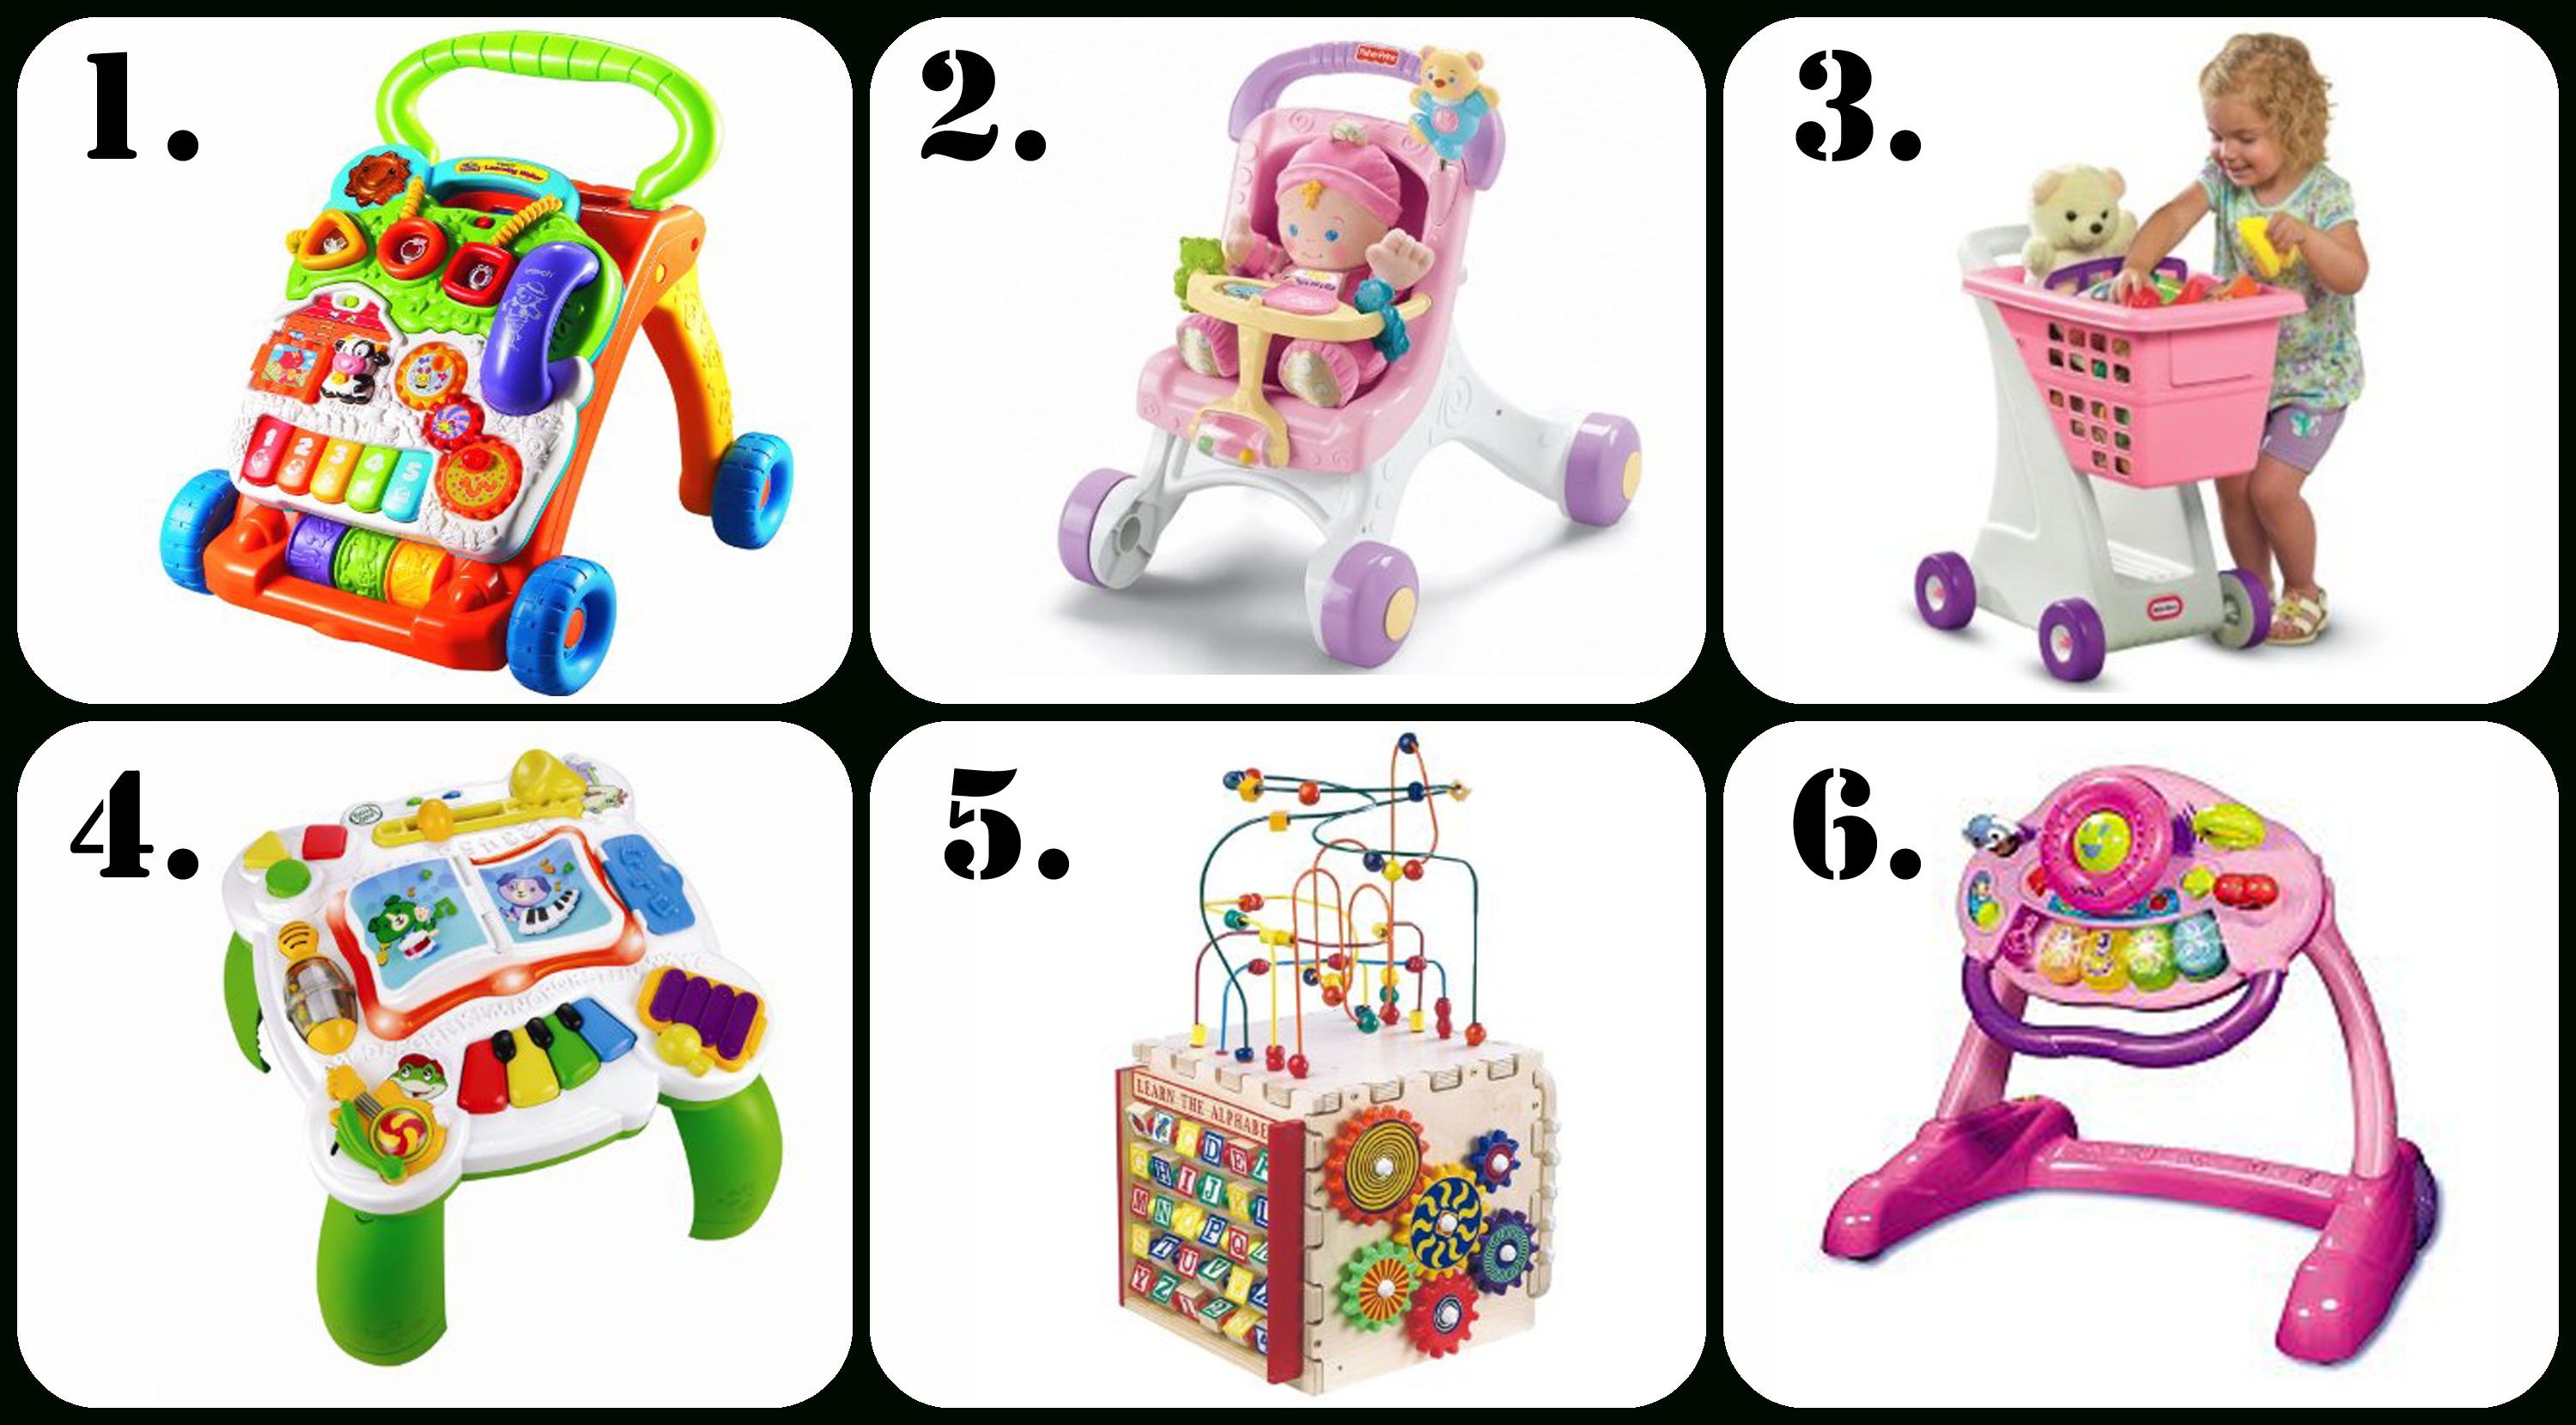 10 Lovable Gift Ideas For A 1 Year Old Girl best gifts for a 1 year old girl e280a2 the pinning mama 2020